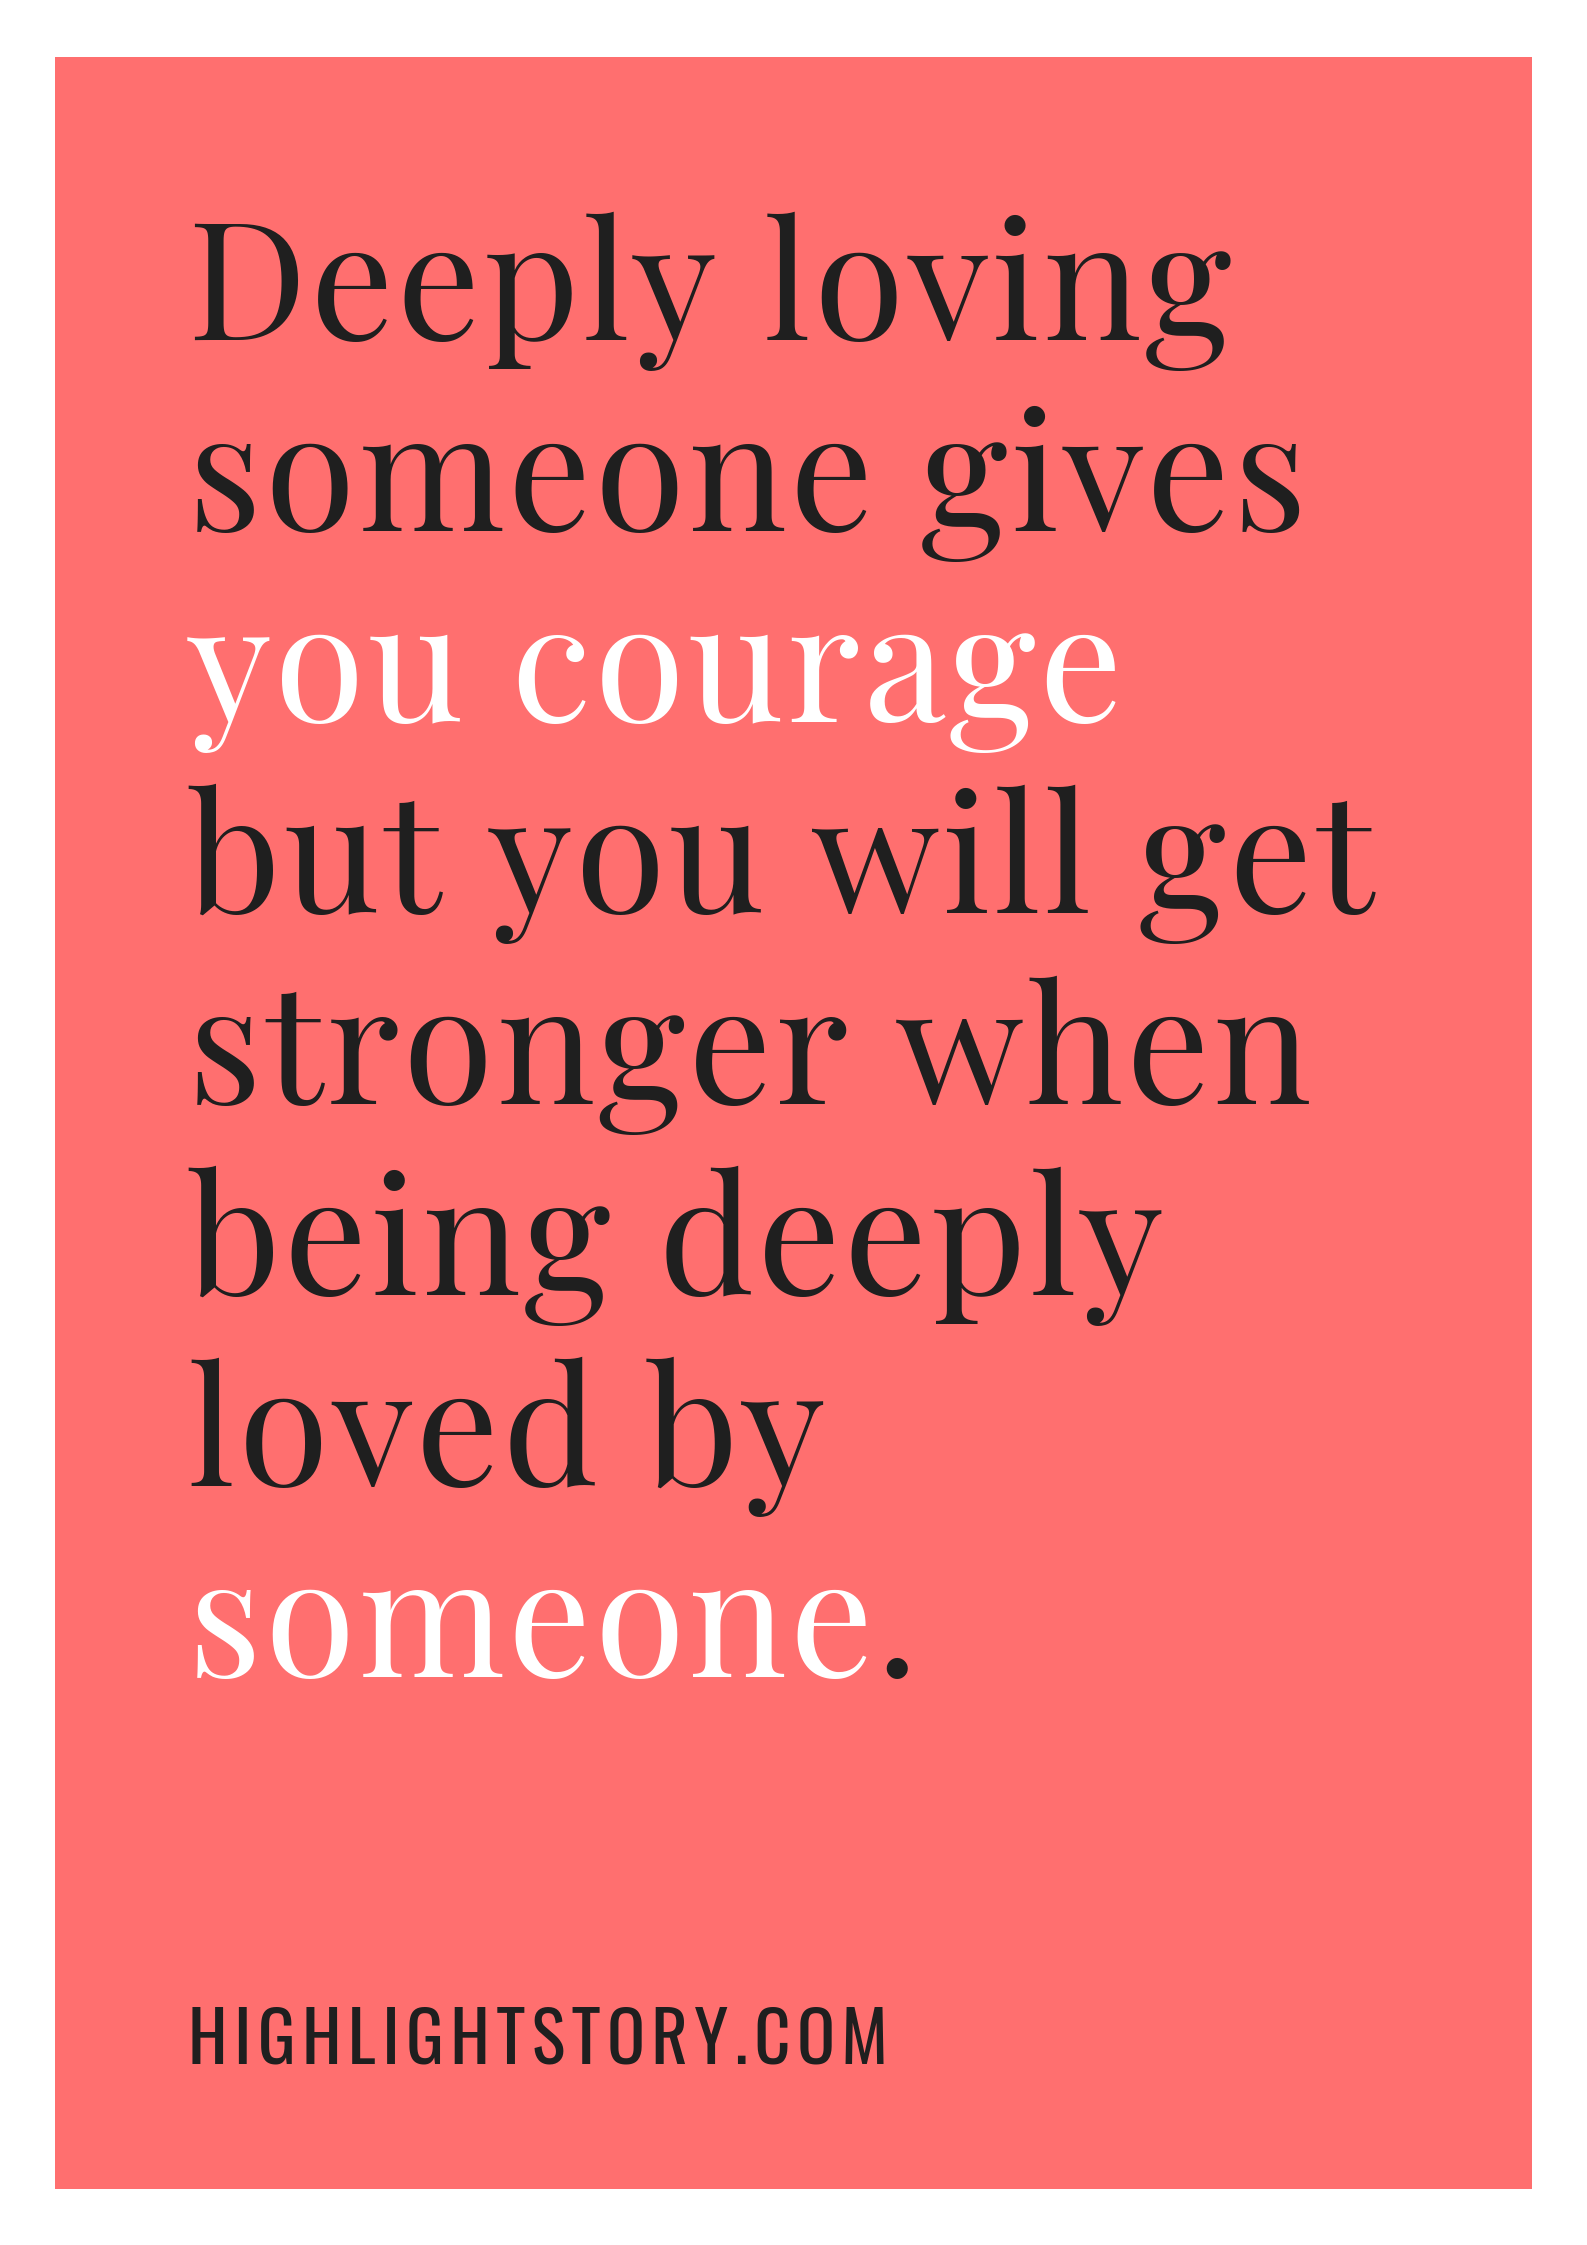 Deeply loving someone gives you courage but you will get stronger when being deeply loved by someone.